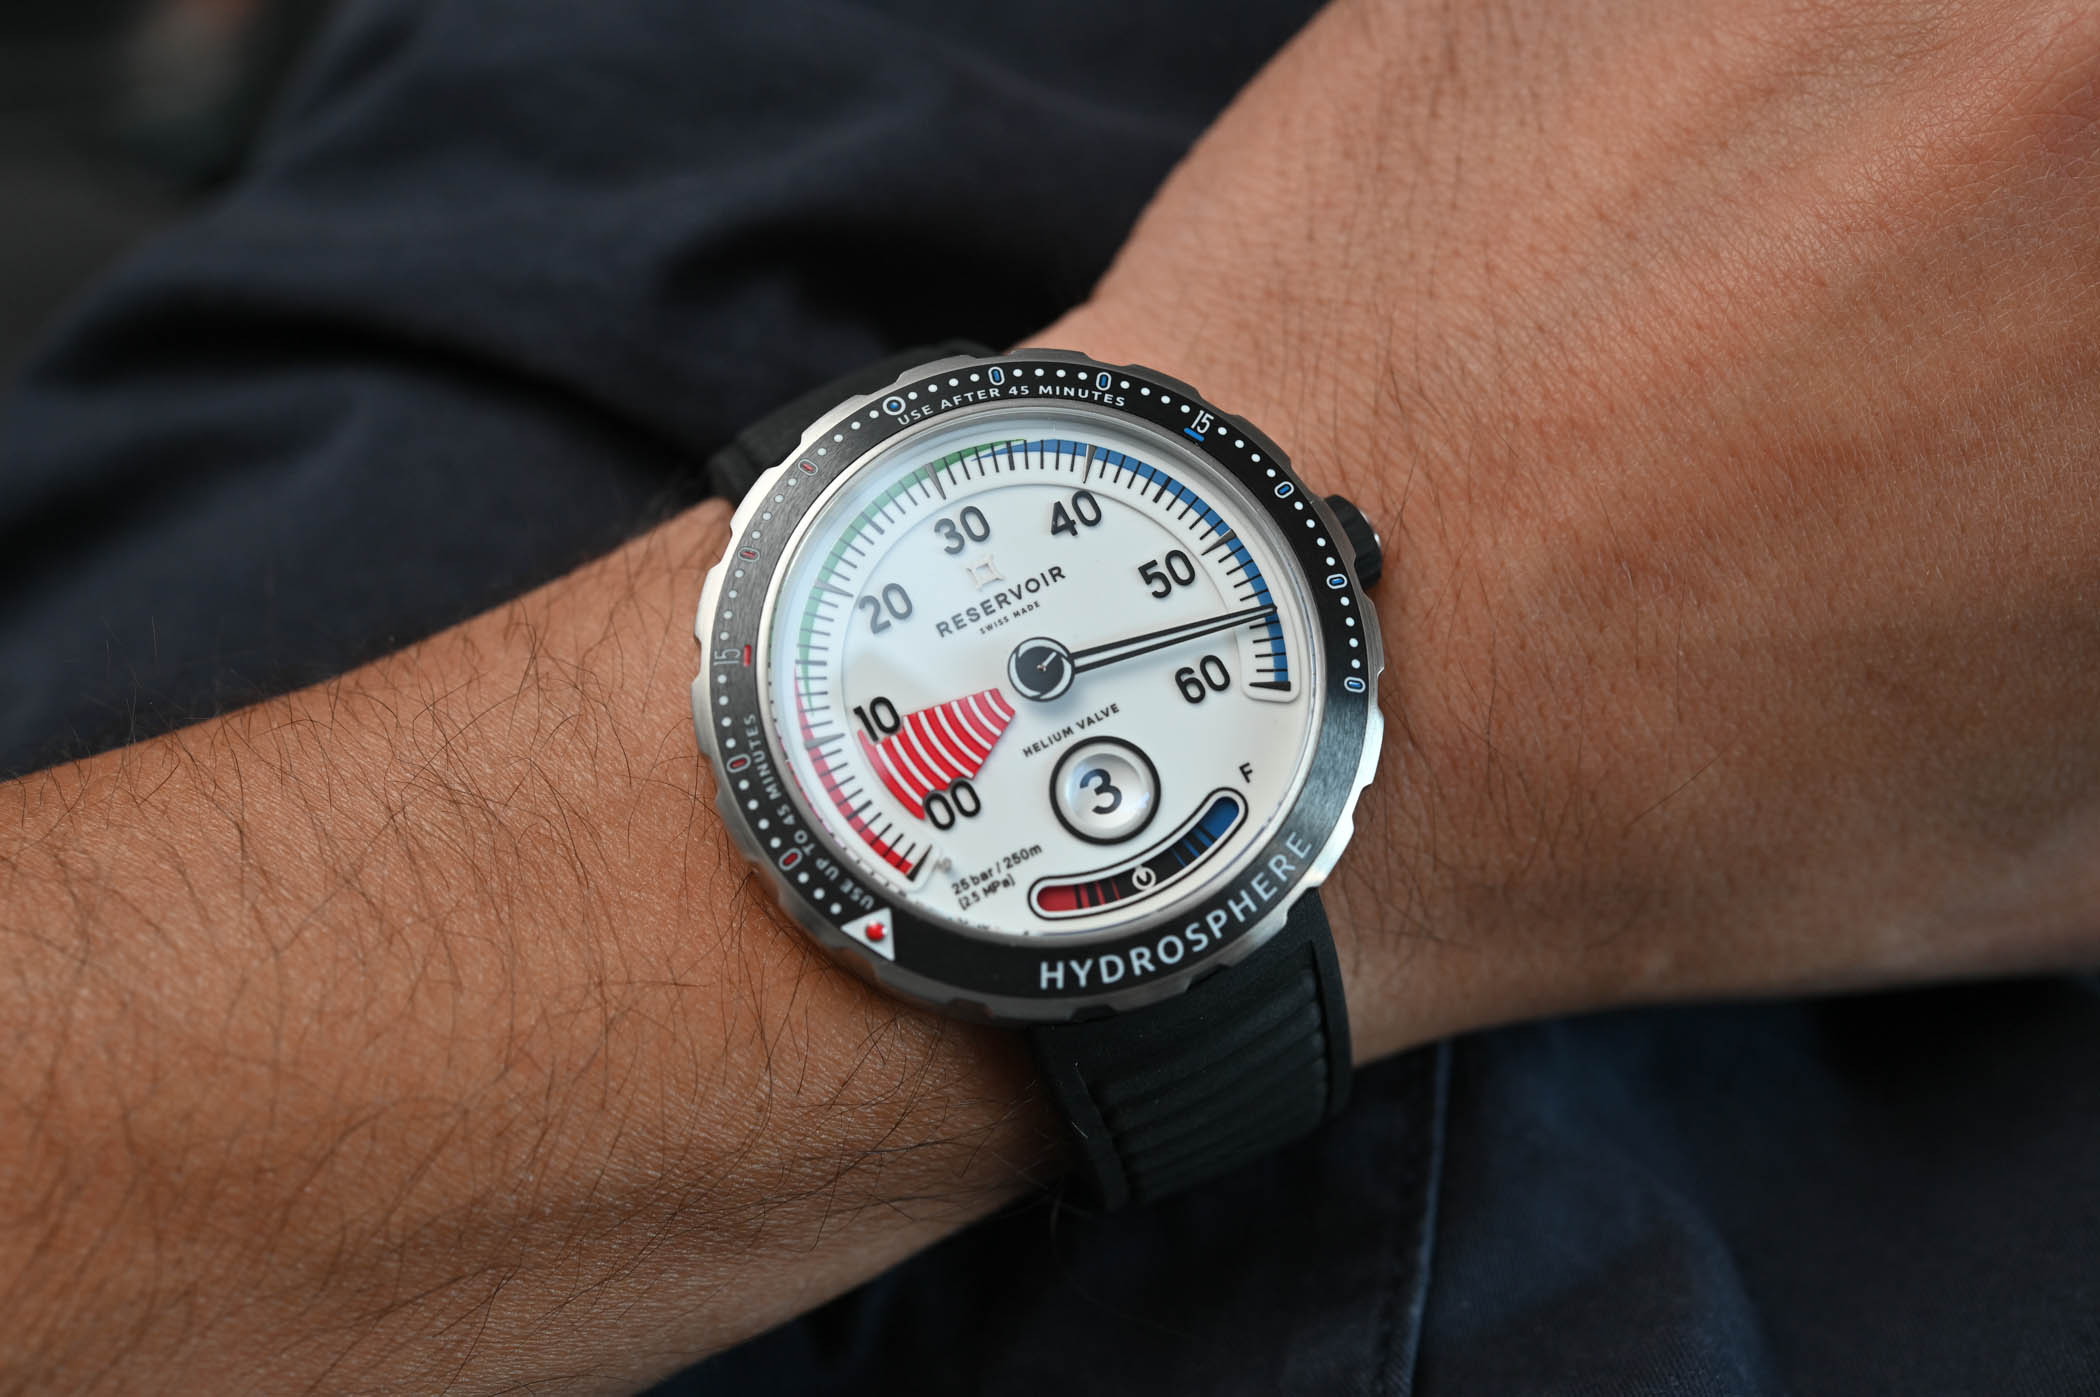 Reservoir Hydrosphere Air Gauge Dive Watch